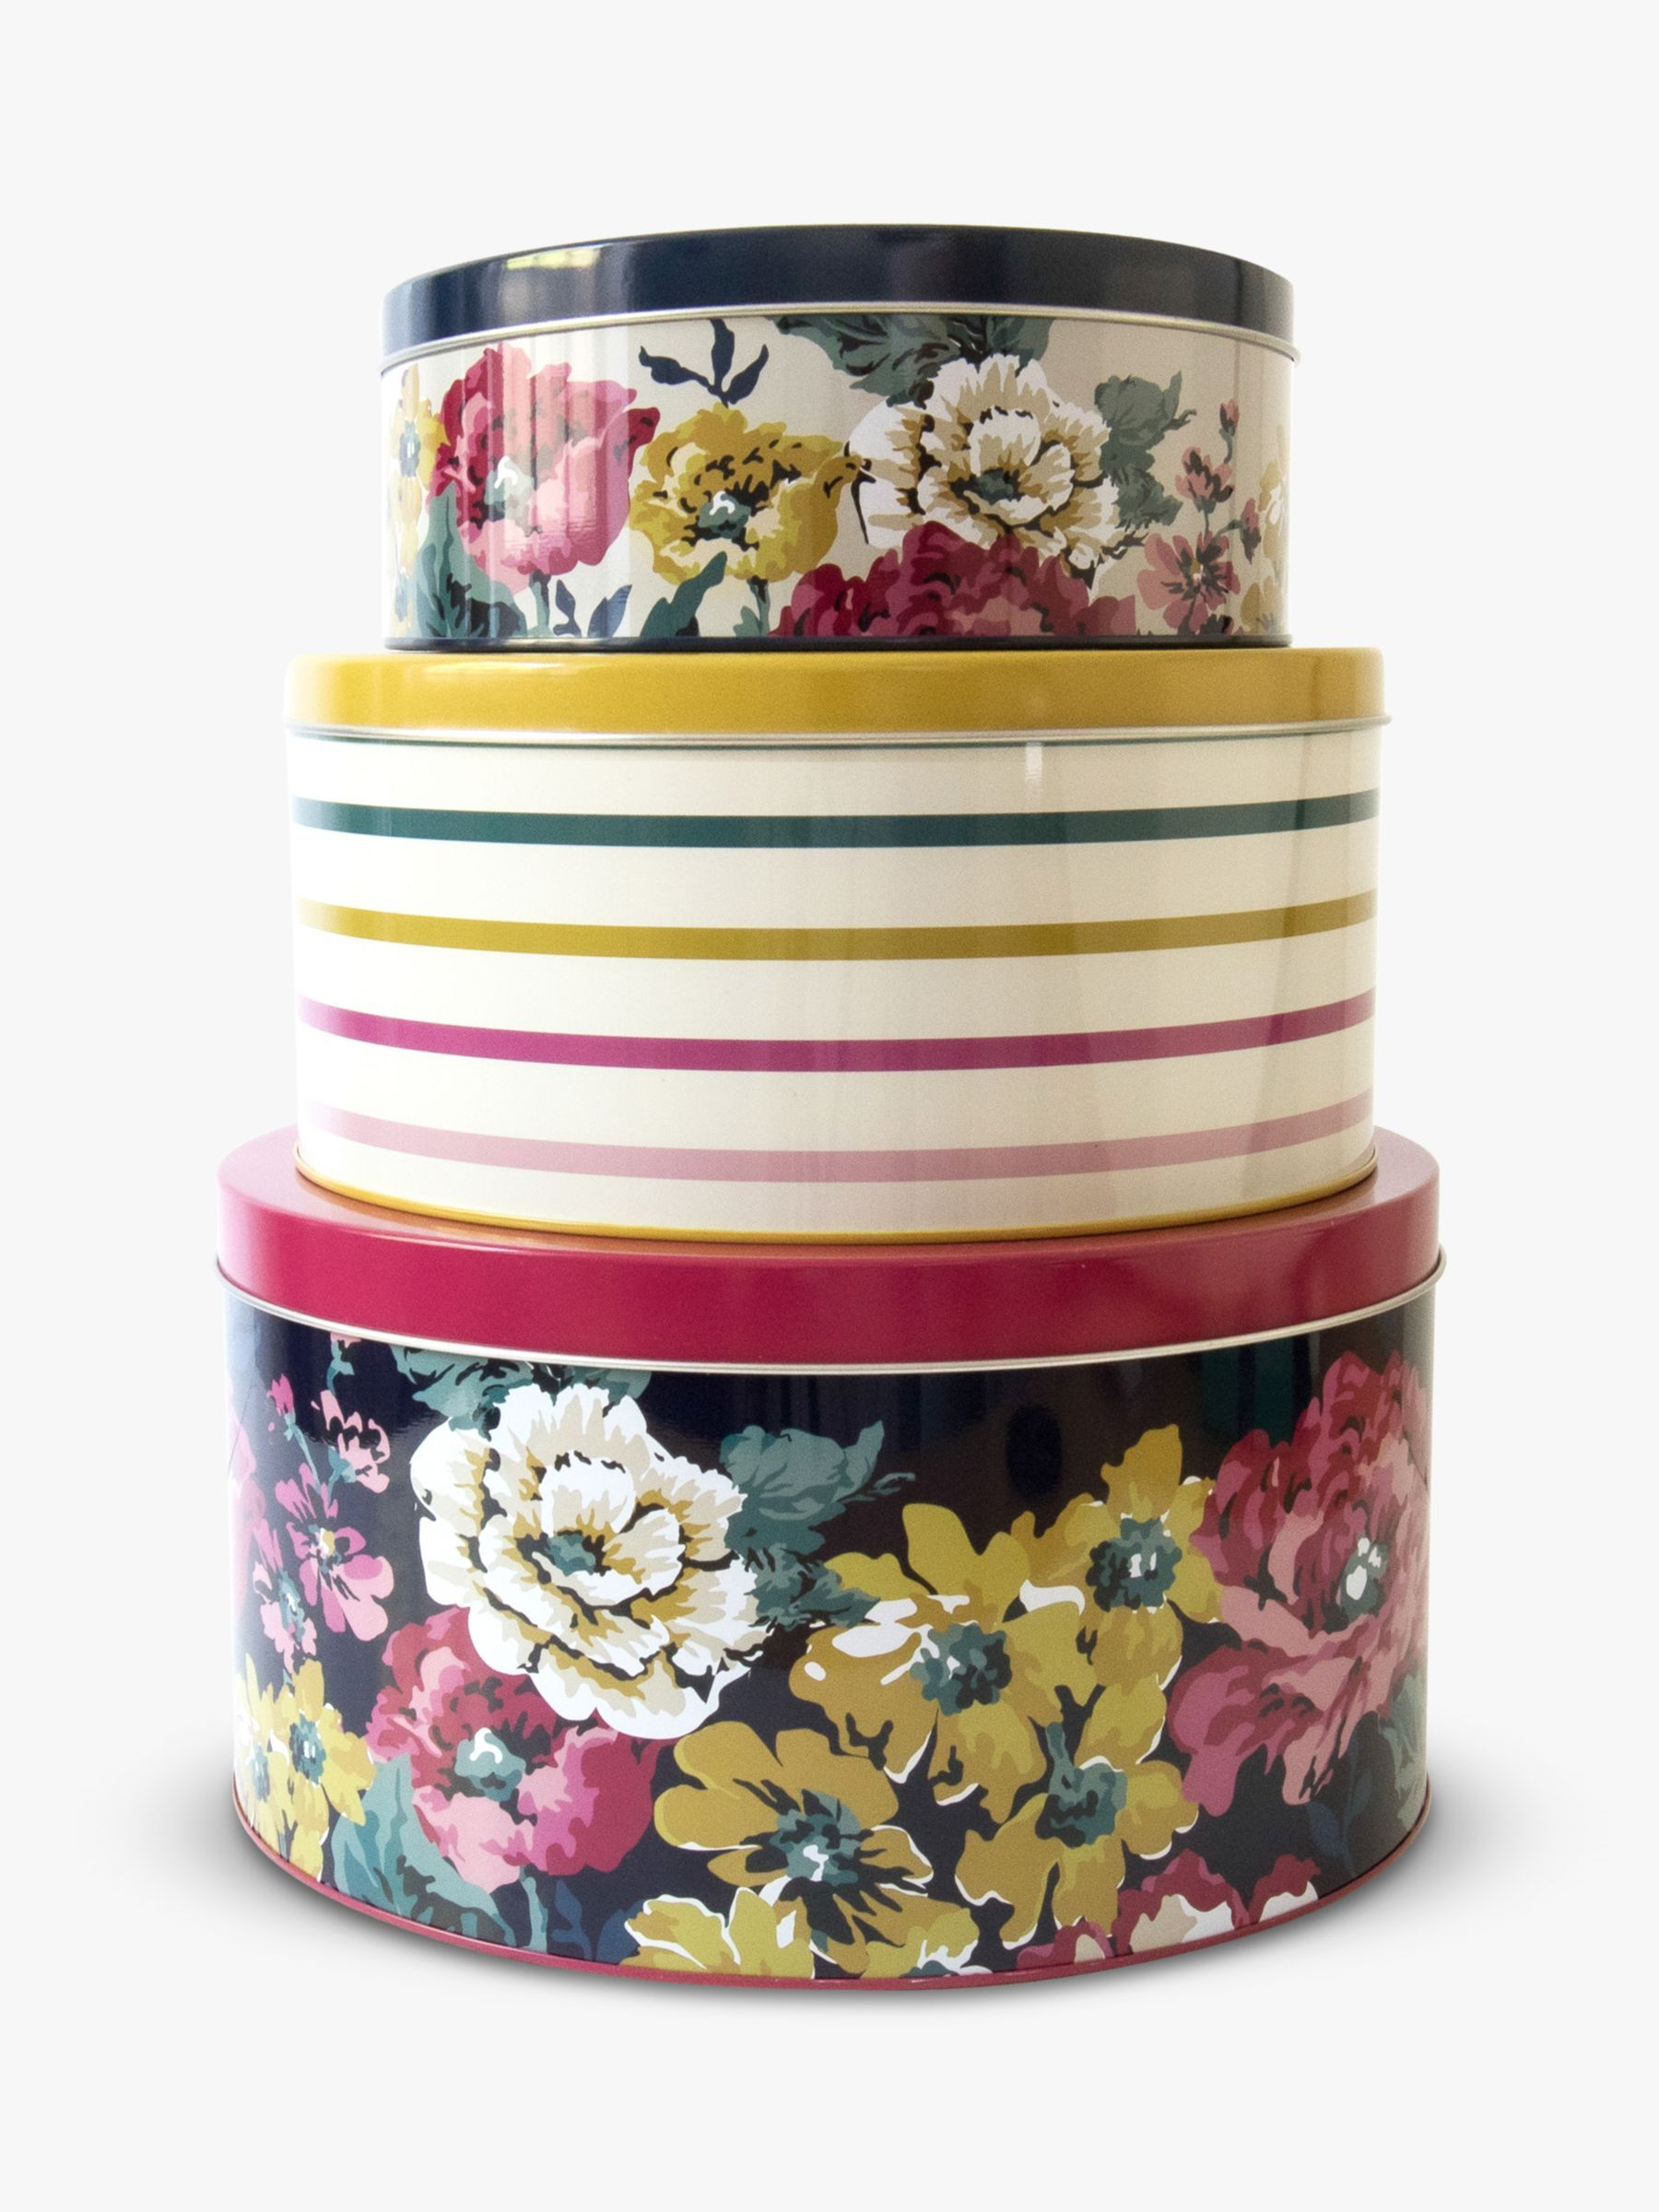 Joules Cambridge Floral Nested Cake Tins In 2020 Cake Tins